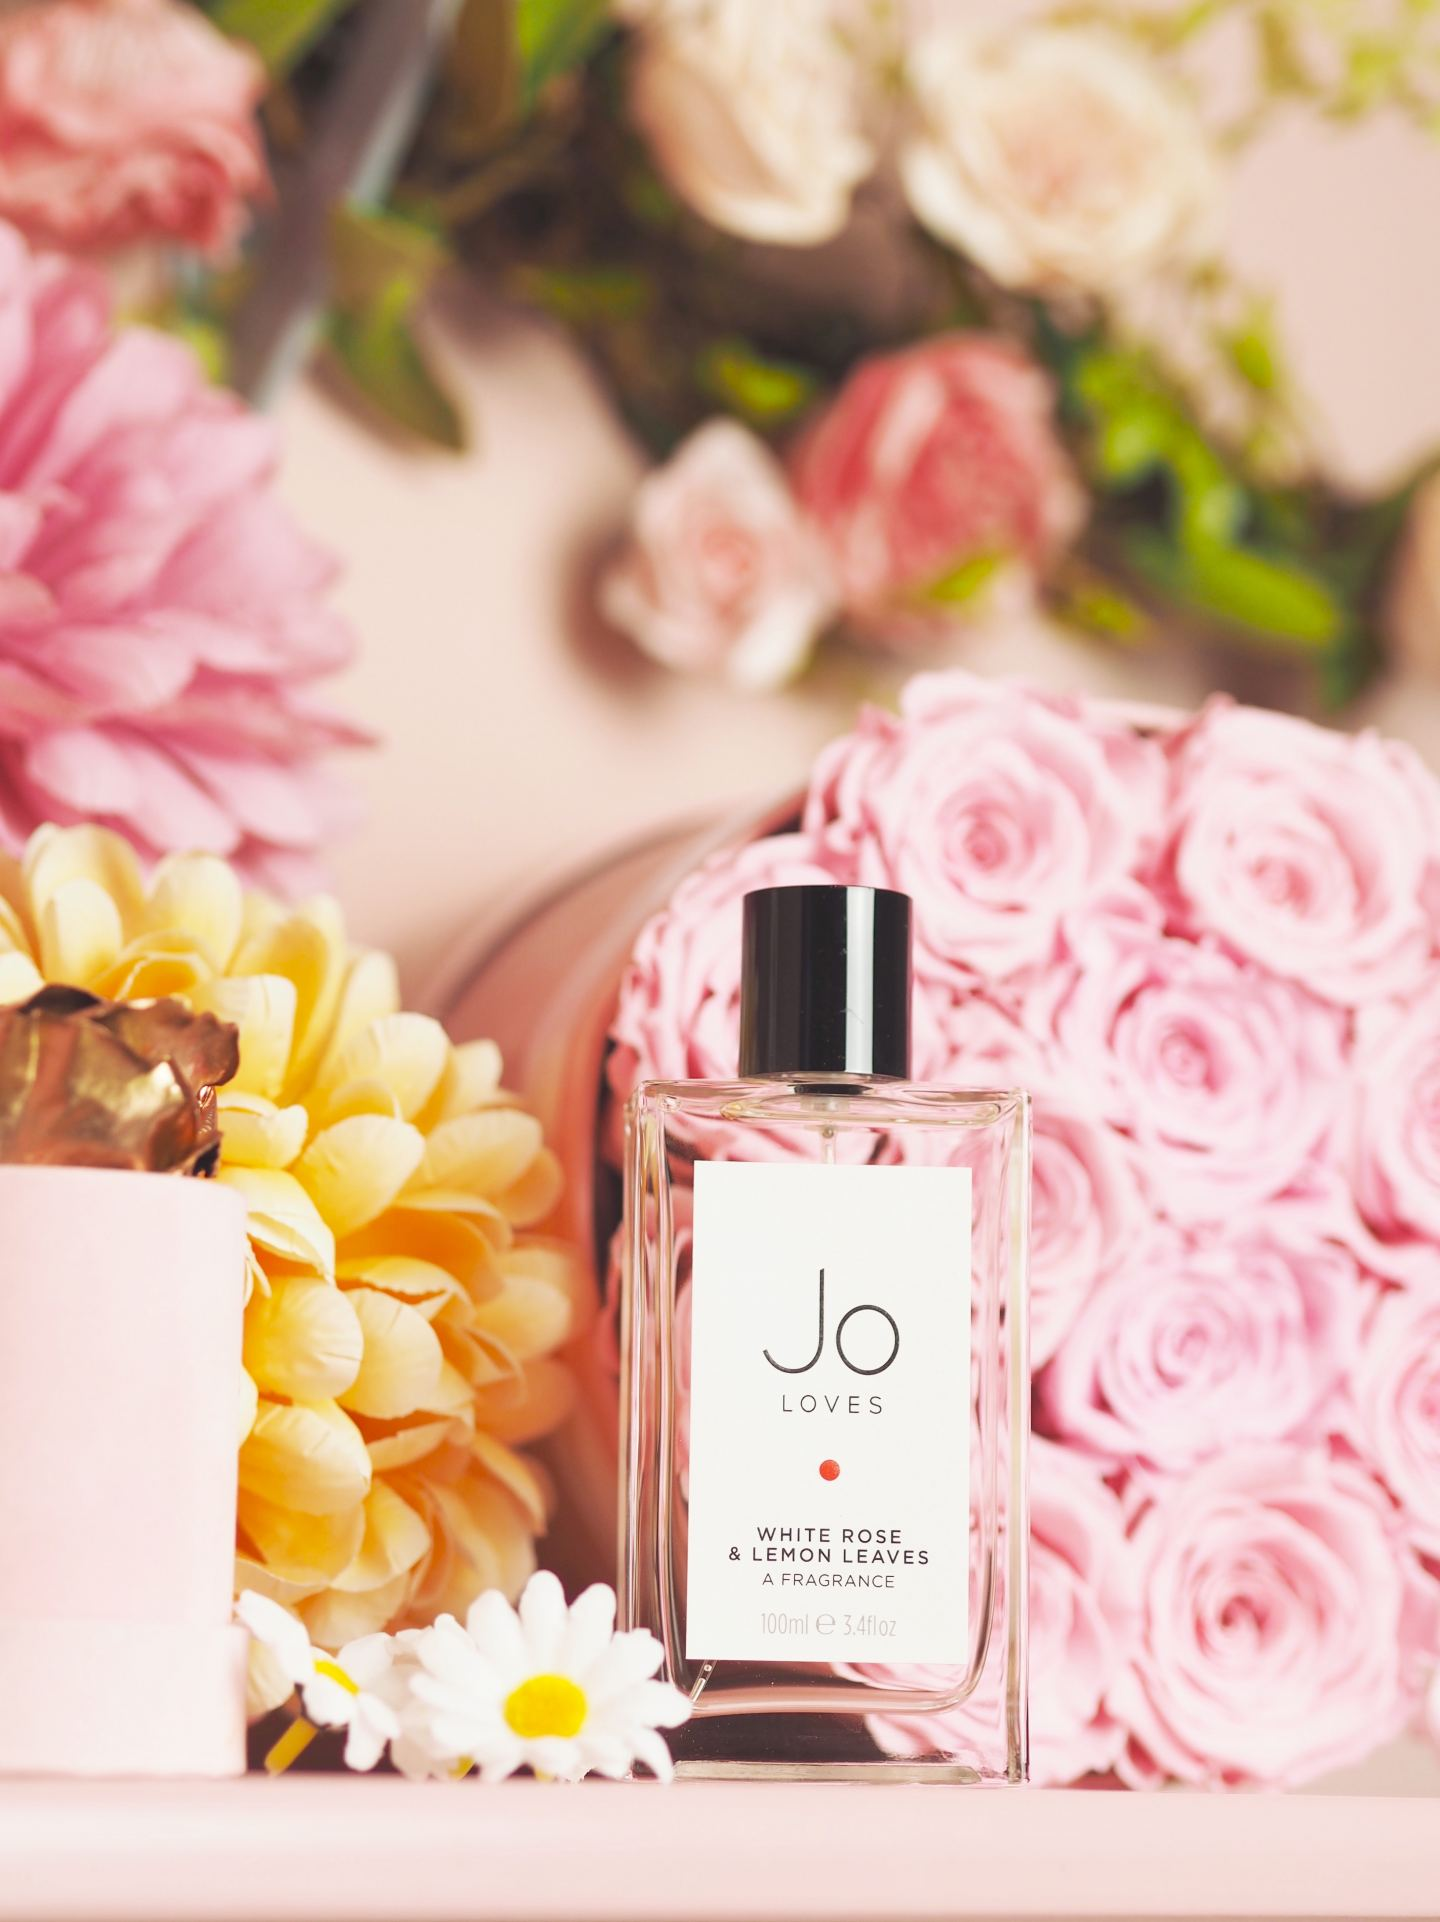 Jo-Loves-White-Roses-Lemon-Leaves-perfume-cologne